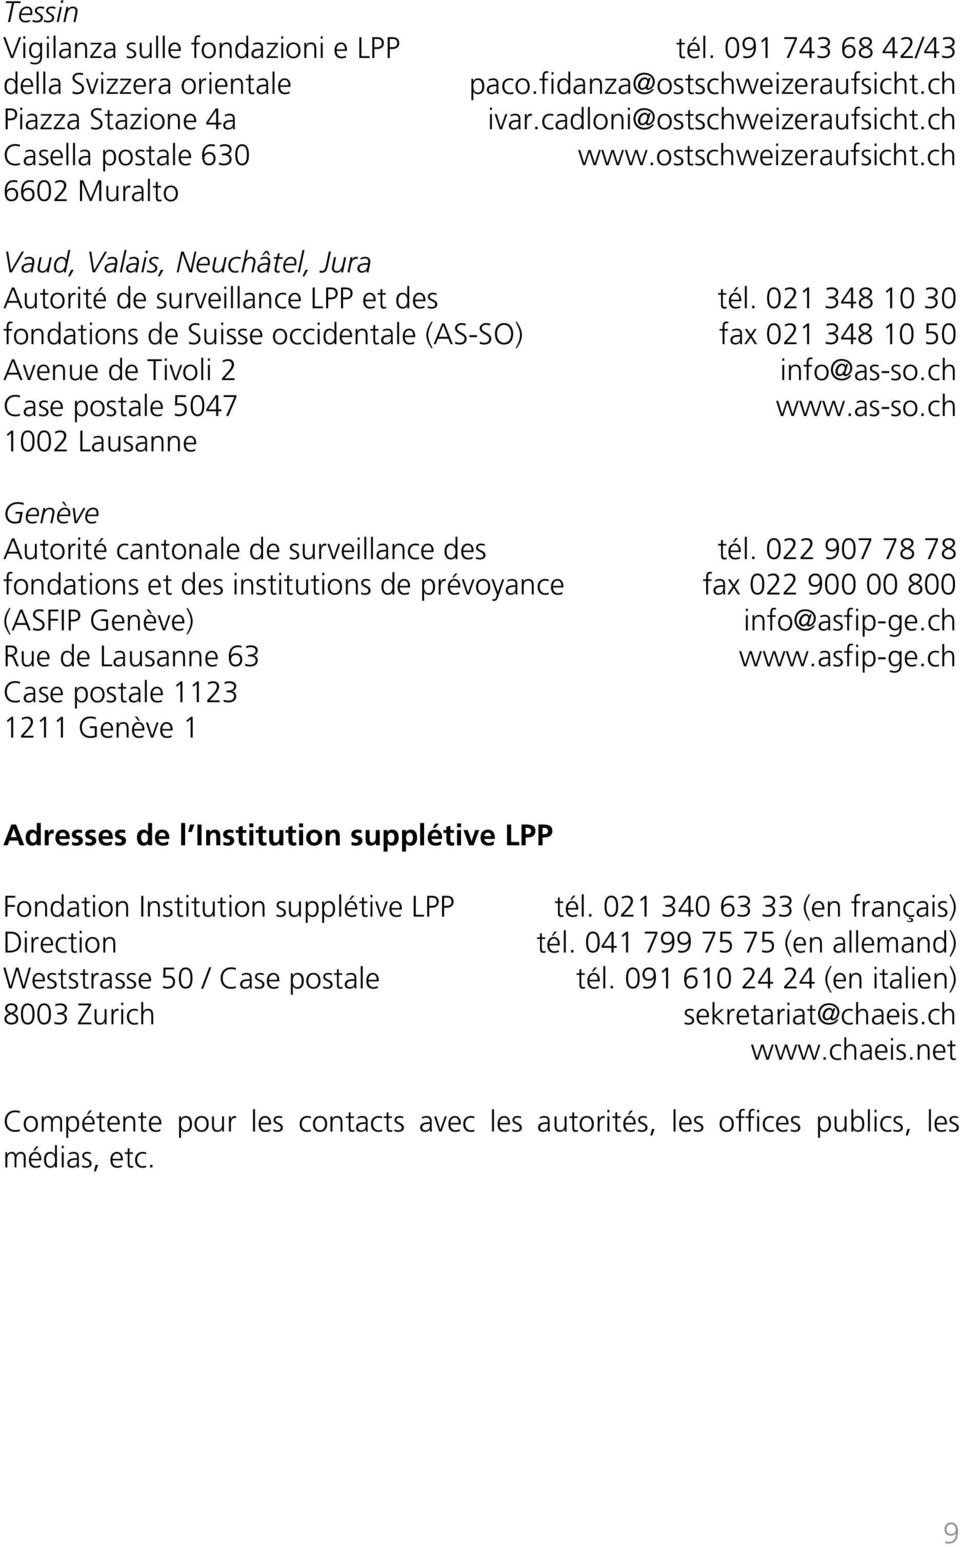 021 348 10 30 fondations de Suisse occidentale (AS-SO) fax 021 348 10 50 Avenue de Tivoli 2 info@as-so.ch Case postale 5047 www.as-so.ch 1002 Lausanne Genève Autorité cantonale de surveillance des tél.